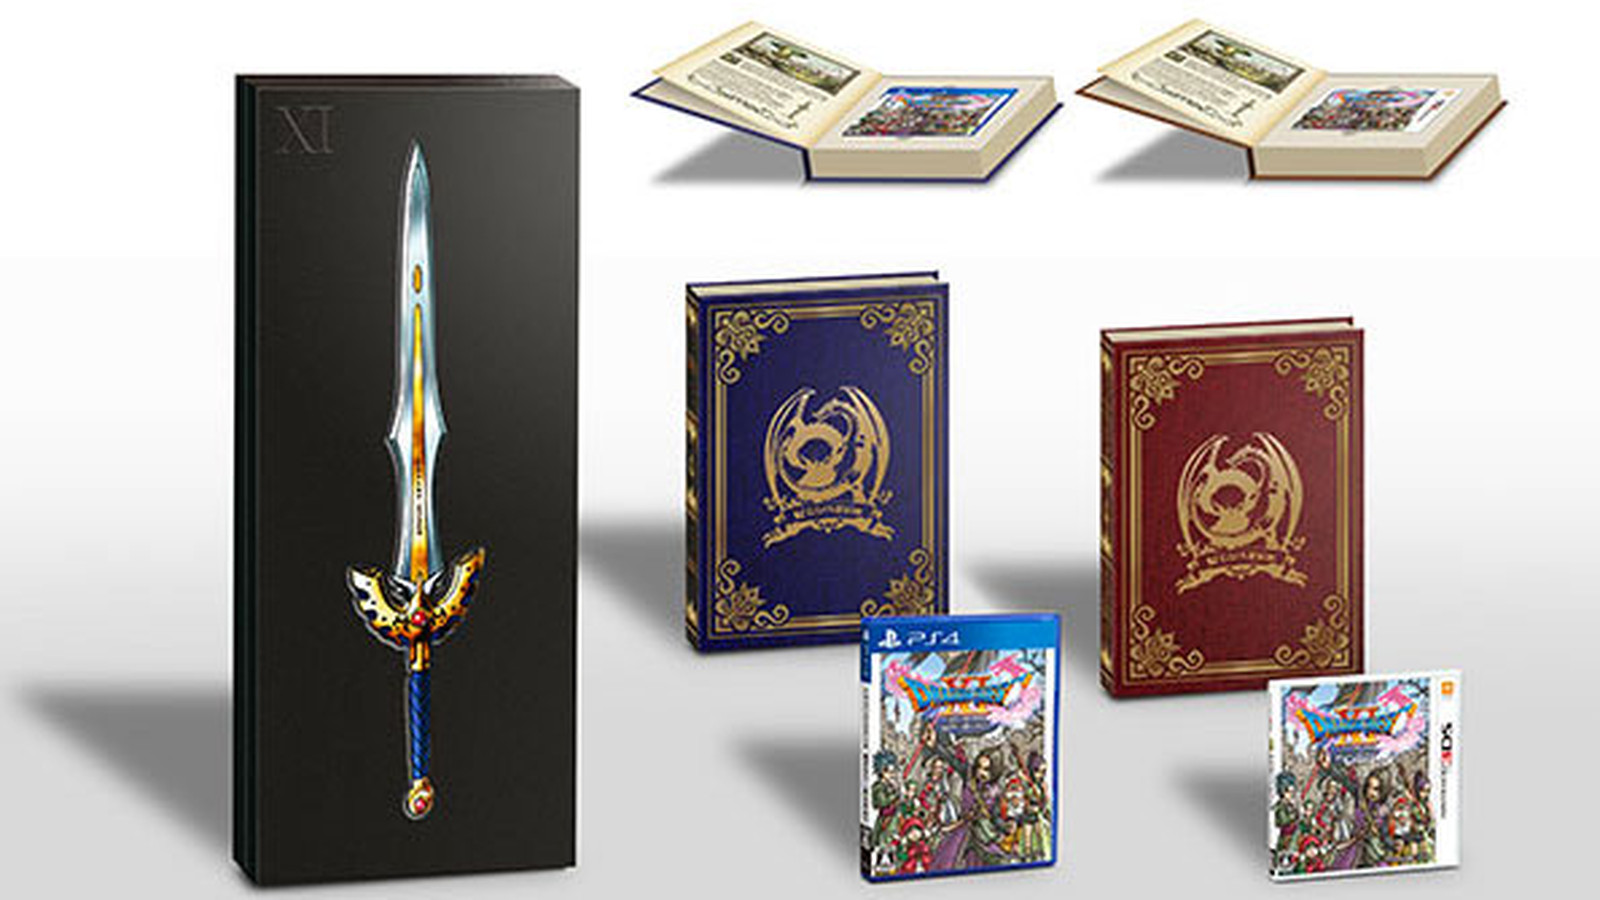 Square Enix Is Selling A PS4 And 3DS Game In One Big Box